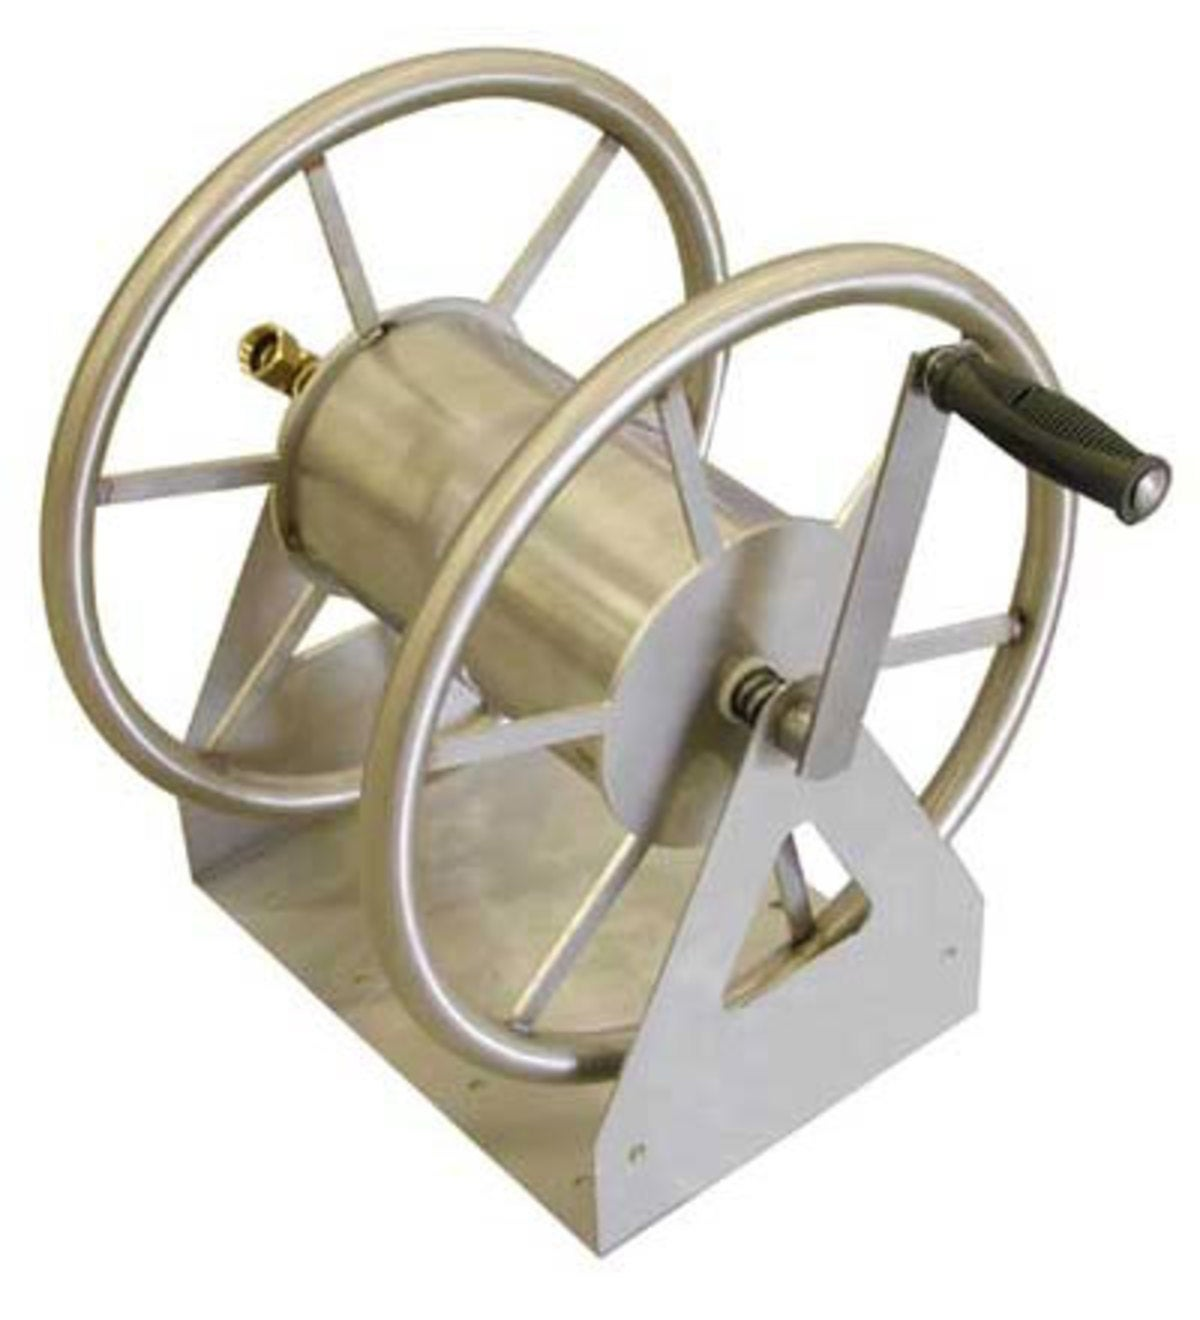 3-in-1 Stainless Steel Hose Reel